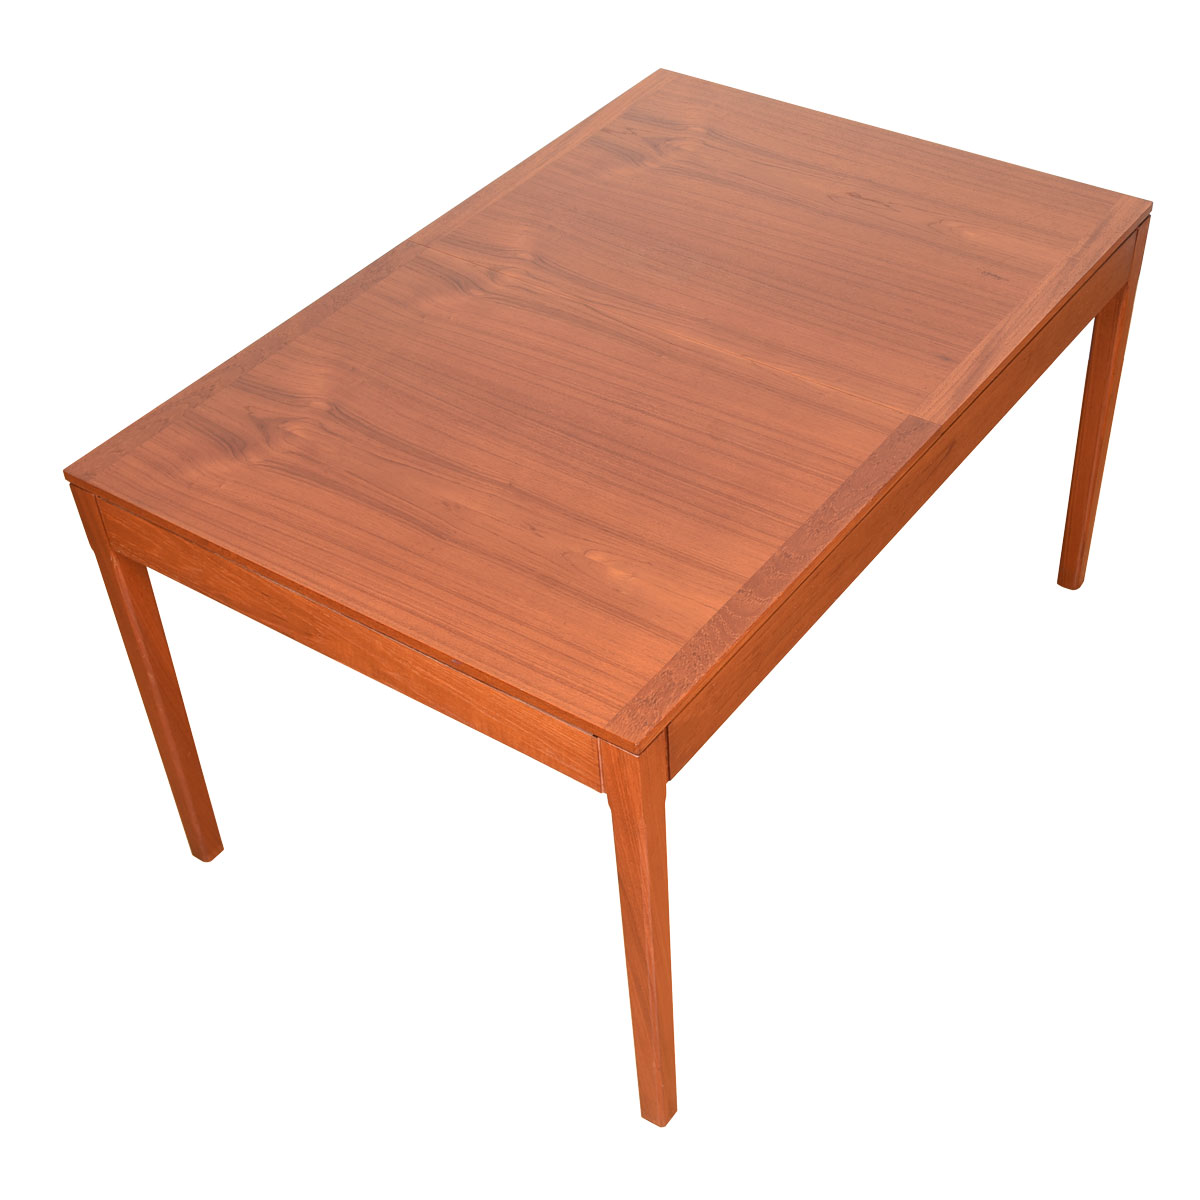 Compact Rectangular Expanding Danish Teak Dining Table